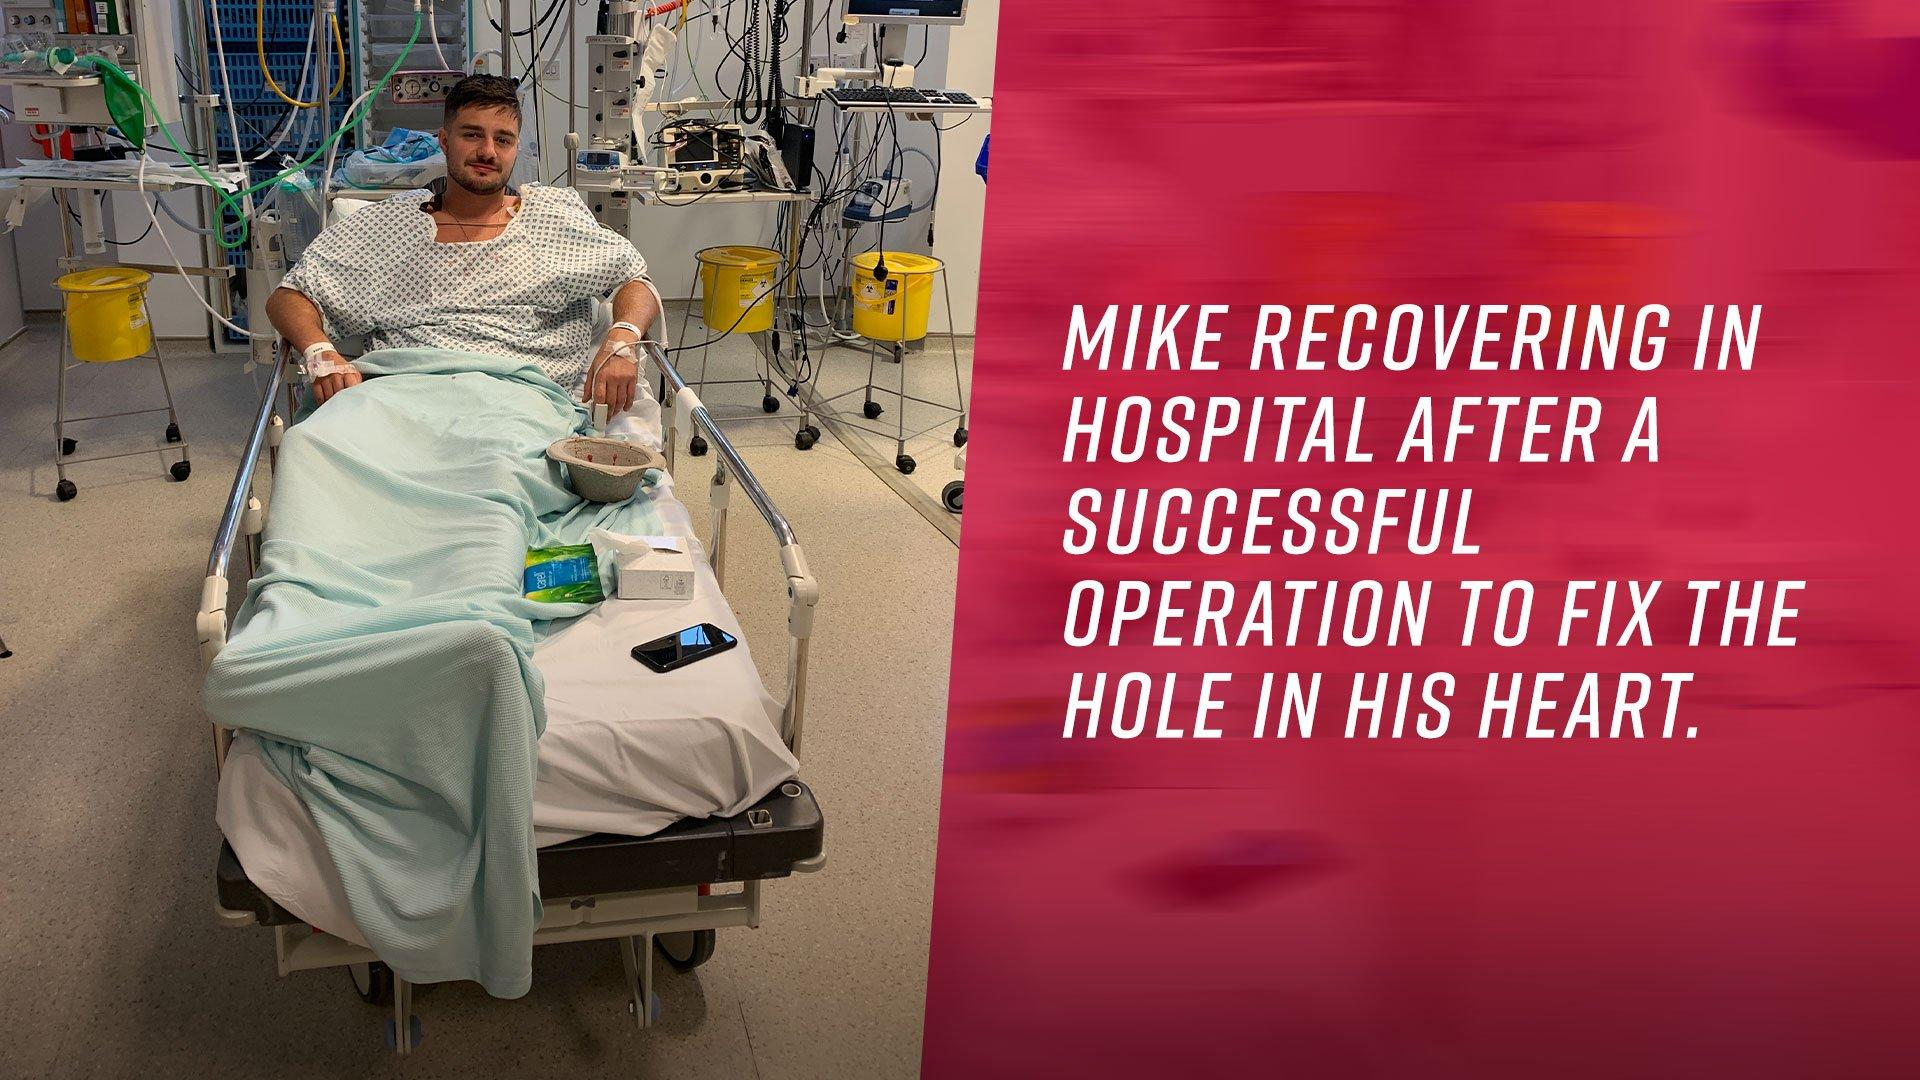 Mike recovering in hospital after a successful operation to fix the hole in his heart.